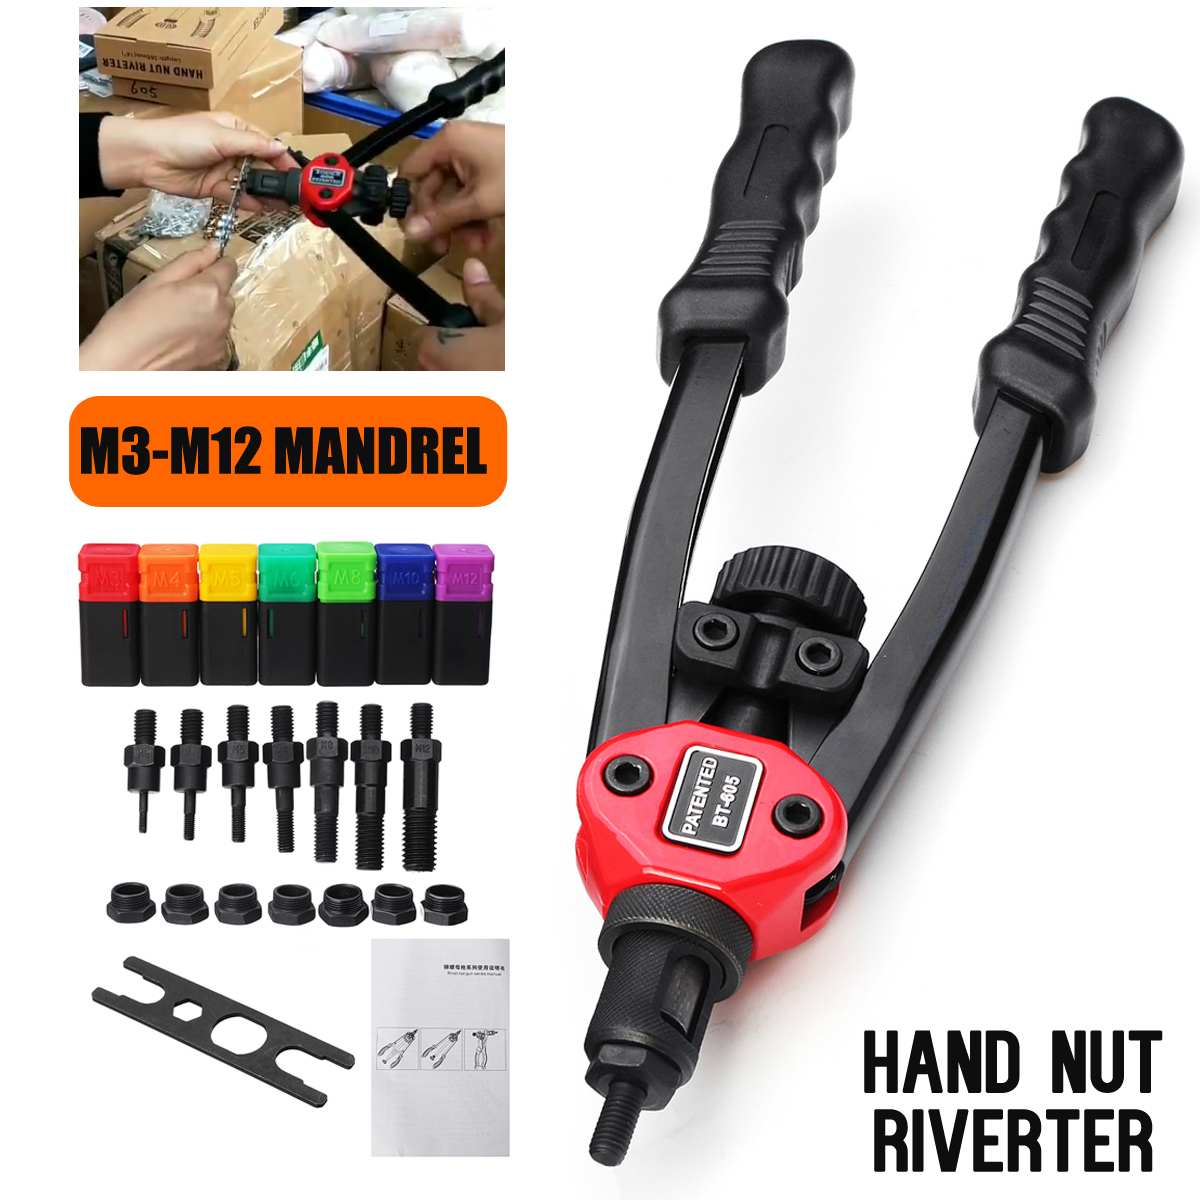 Becornce 1Set Riveter Nut Guns Auto Rivet Tool BT-605 Hand Nut Riveter Guns M3 M4 M5 M6 M8 M10 M12 Mandrel Riveting Tool Kits